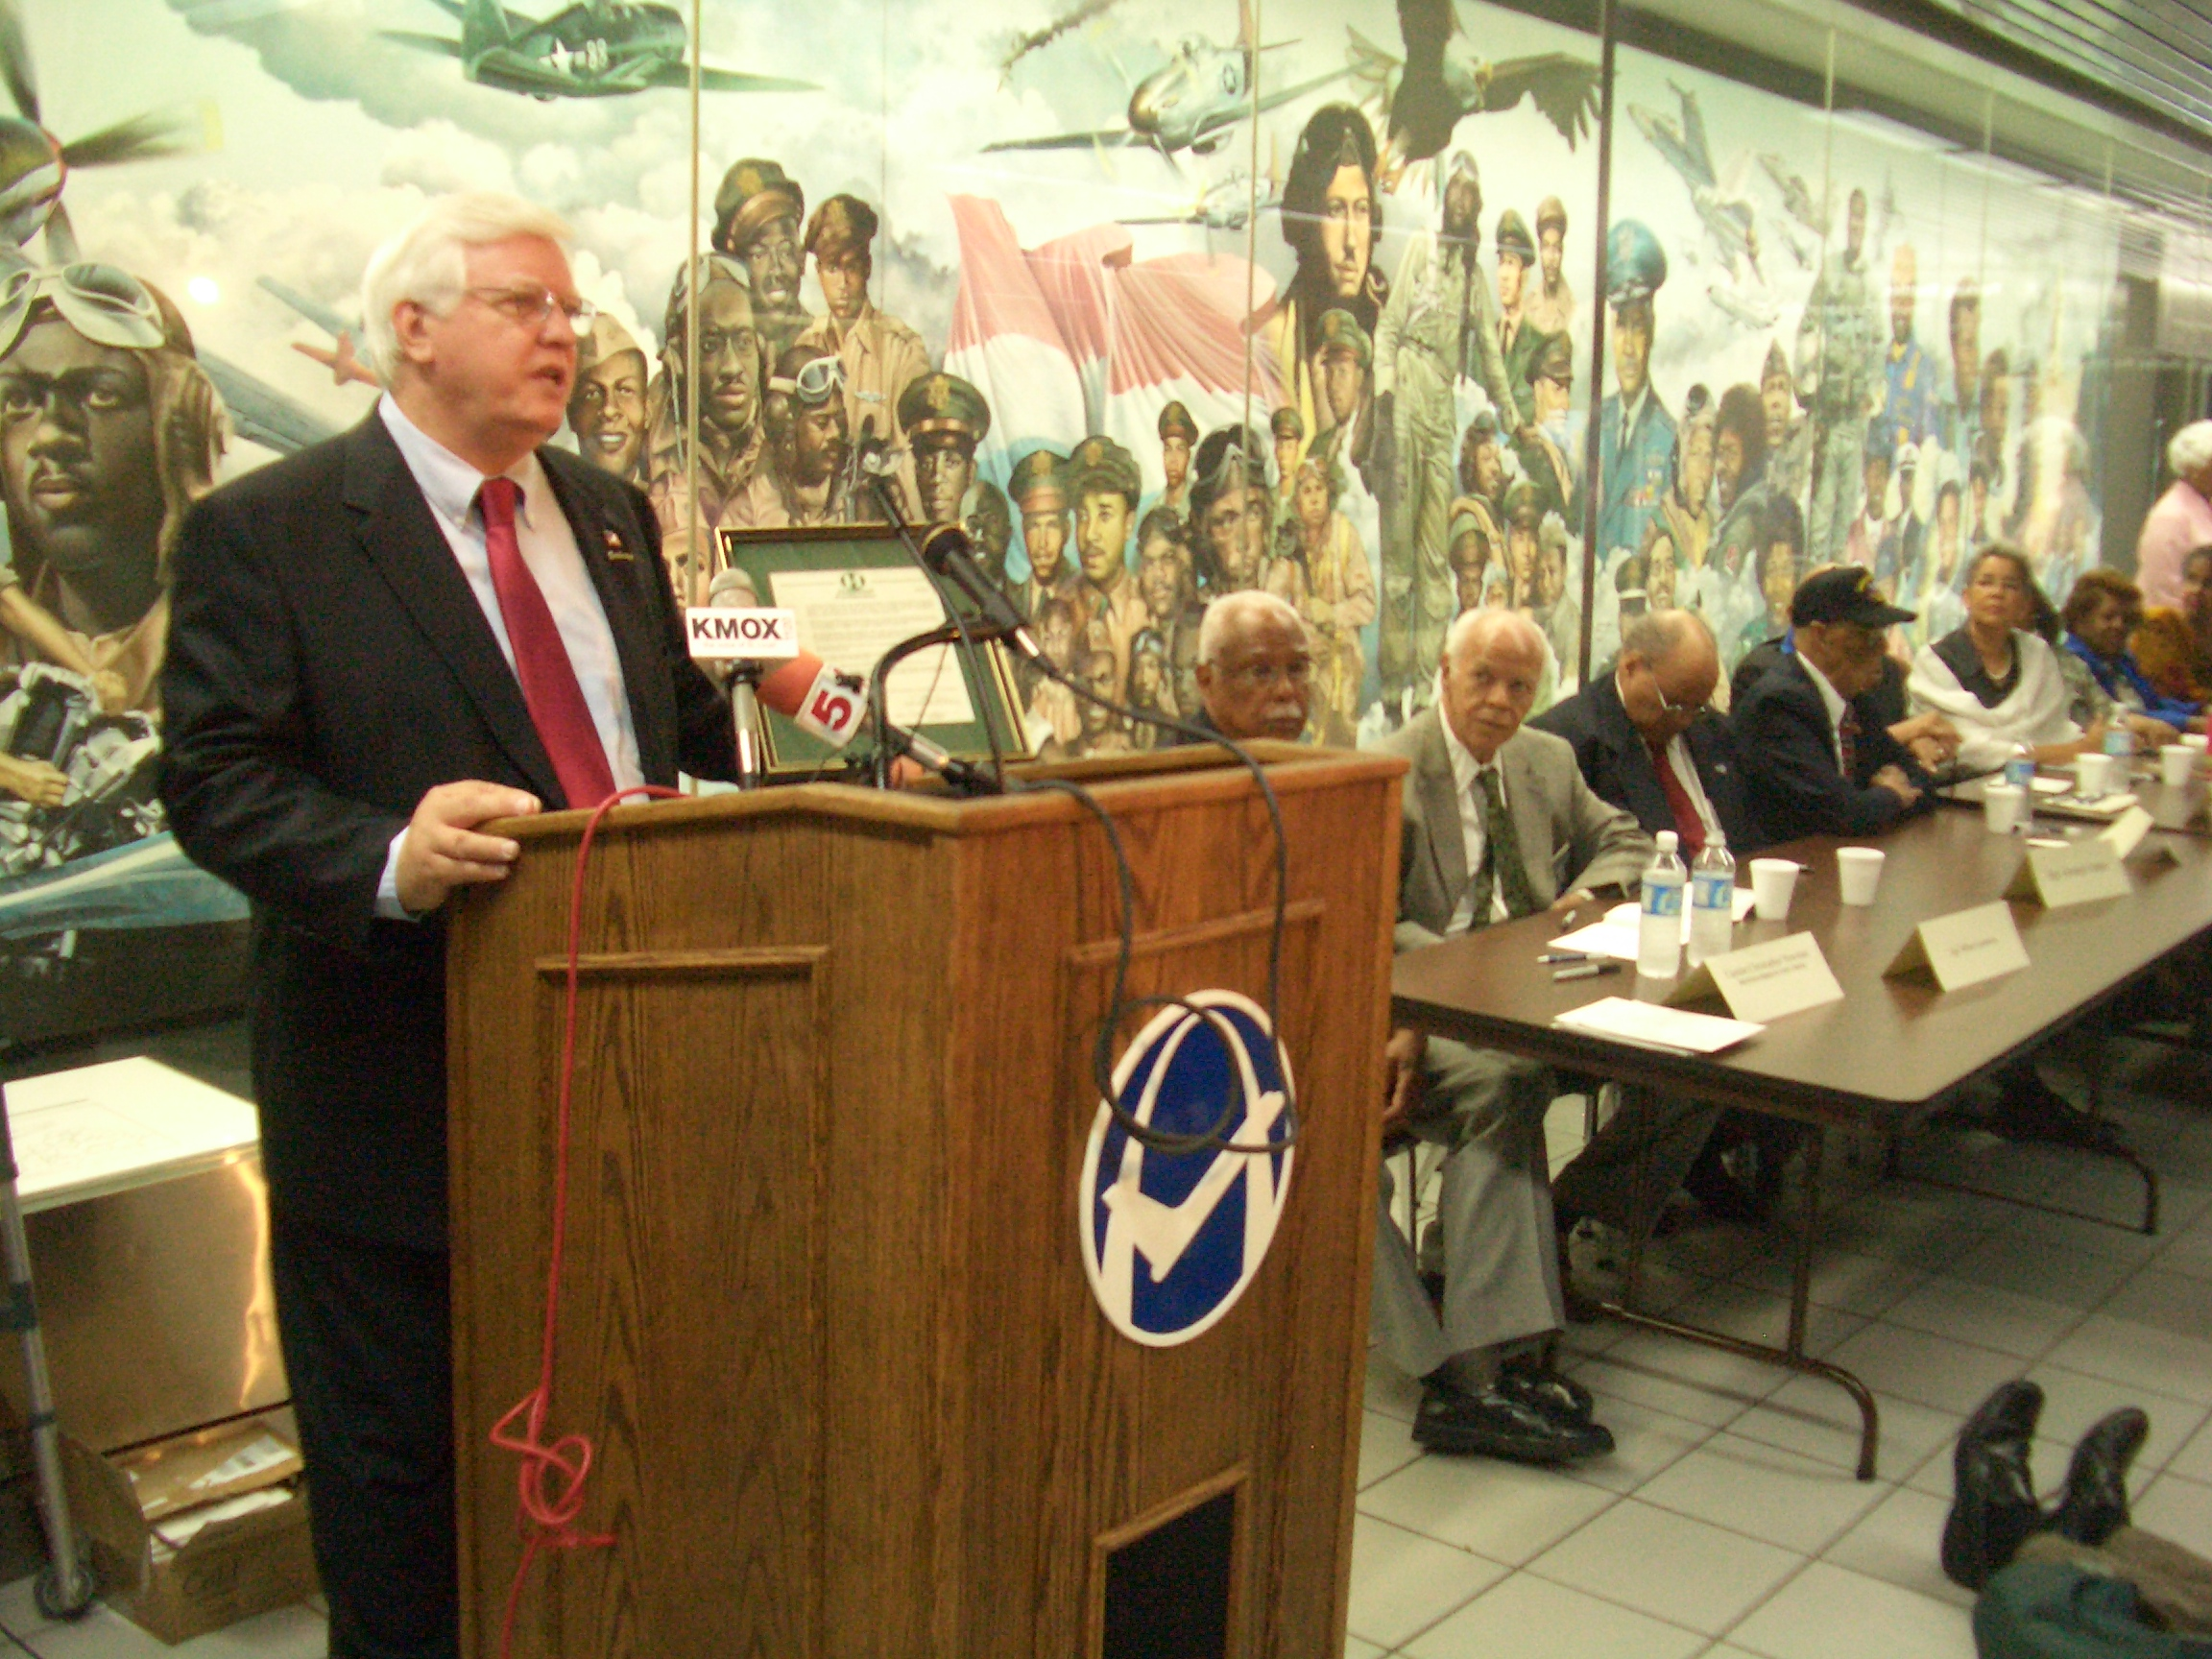 TR speaks at the dedication of the Tuskegee Airmen Mural at St. Louis International Airport